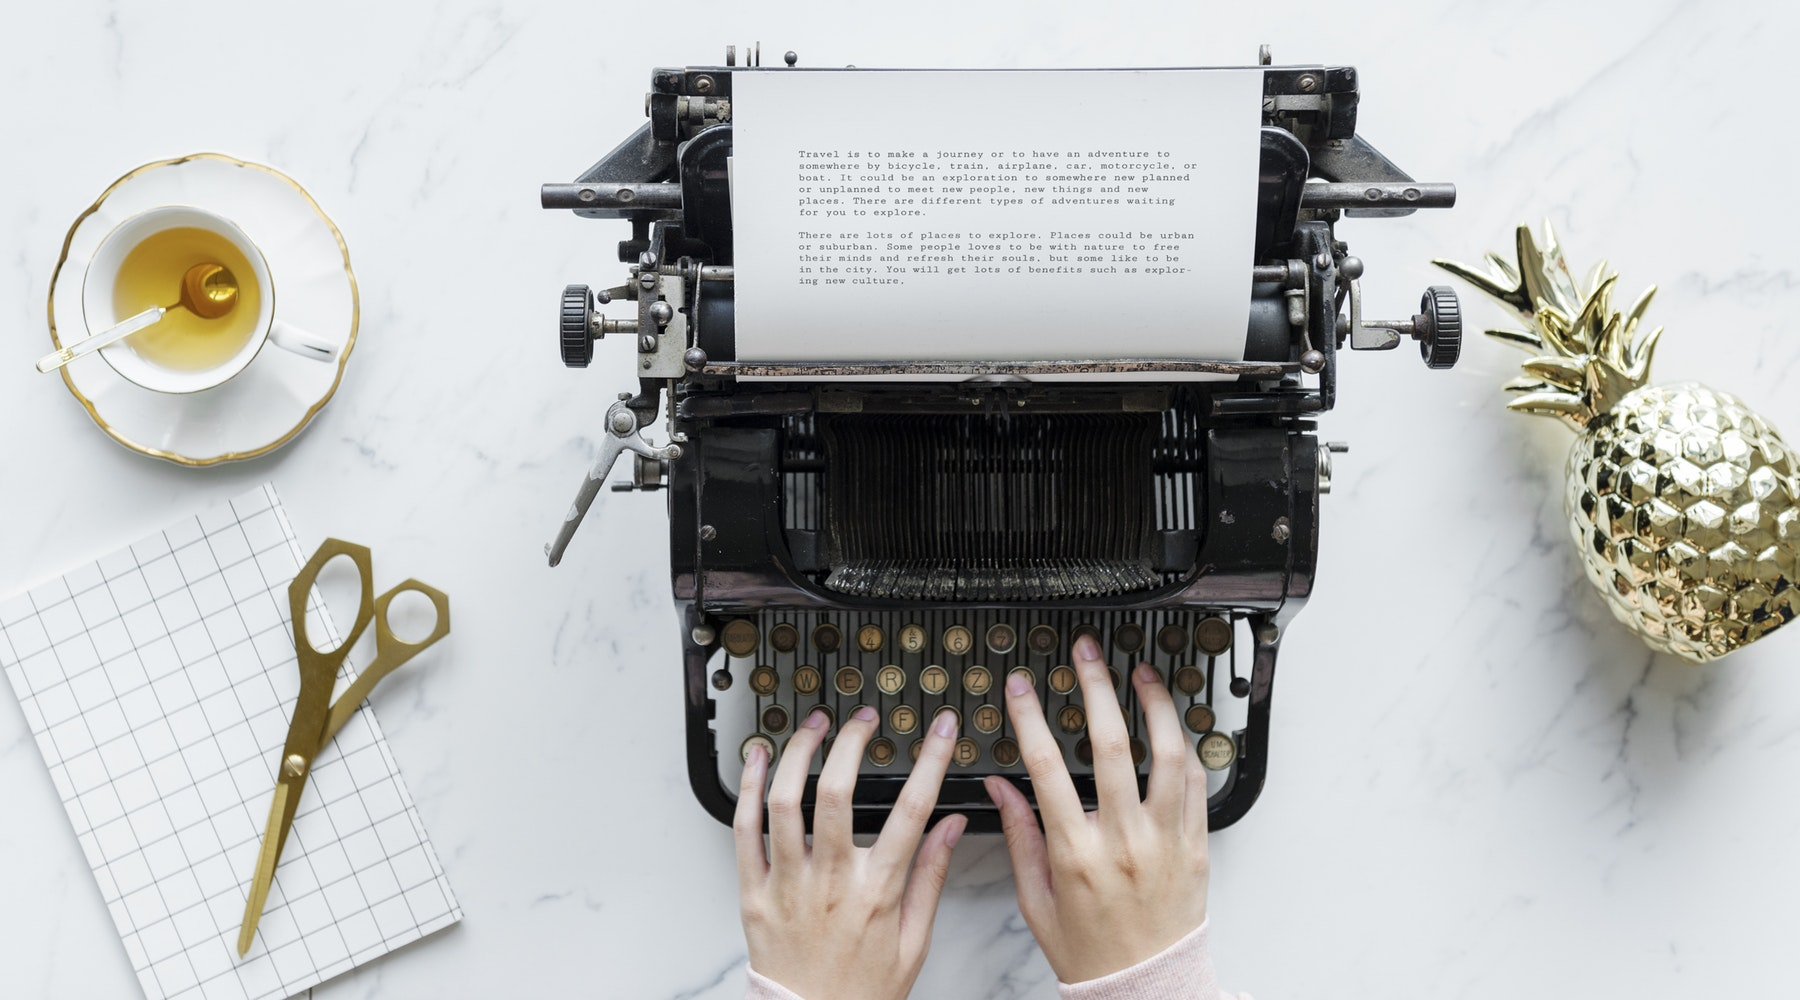 Want To Be A Great Writer? Learn All The Secret Sauce From This FREE Course